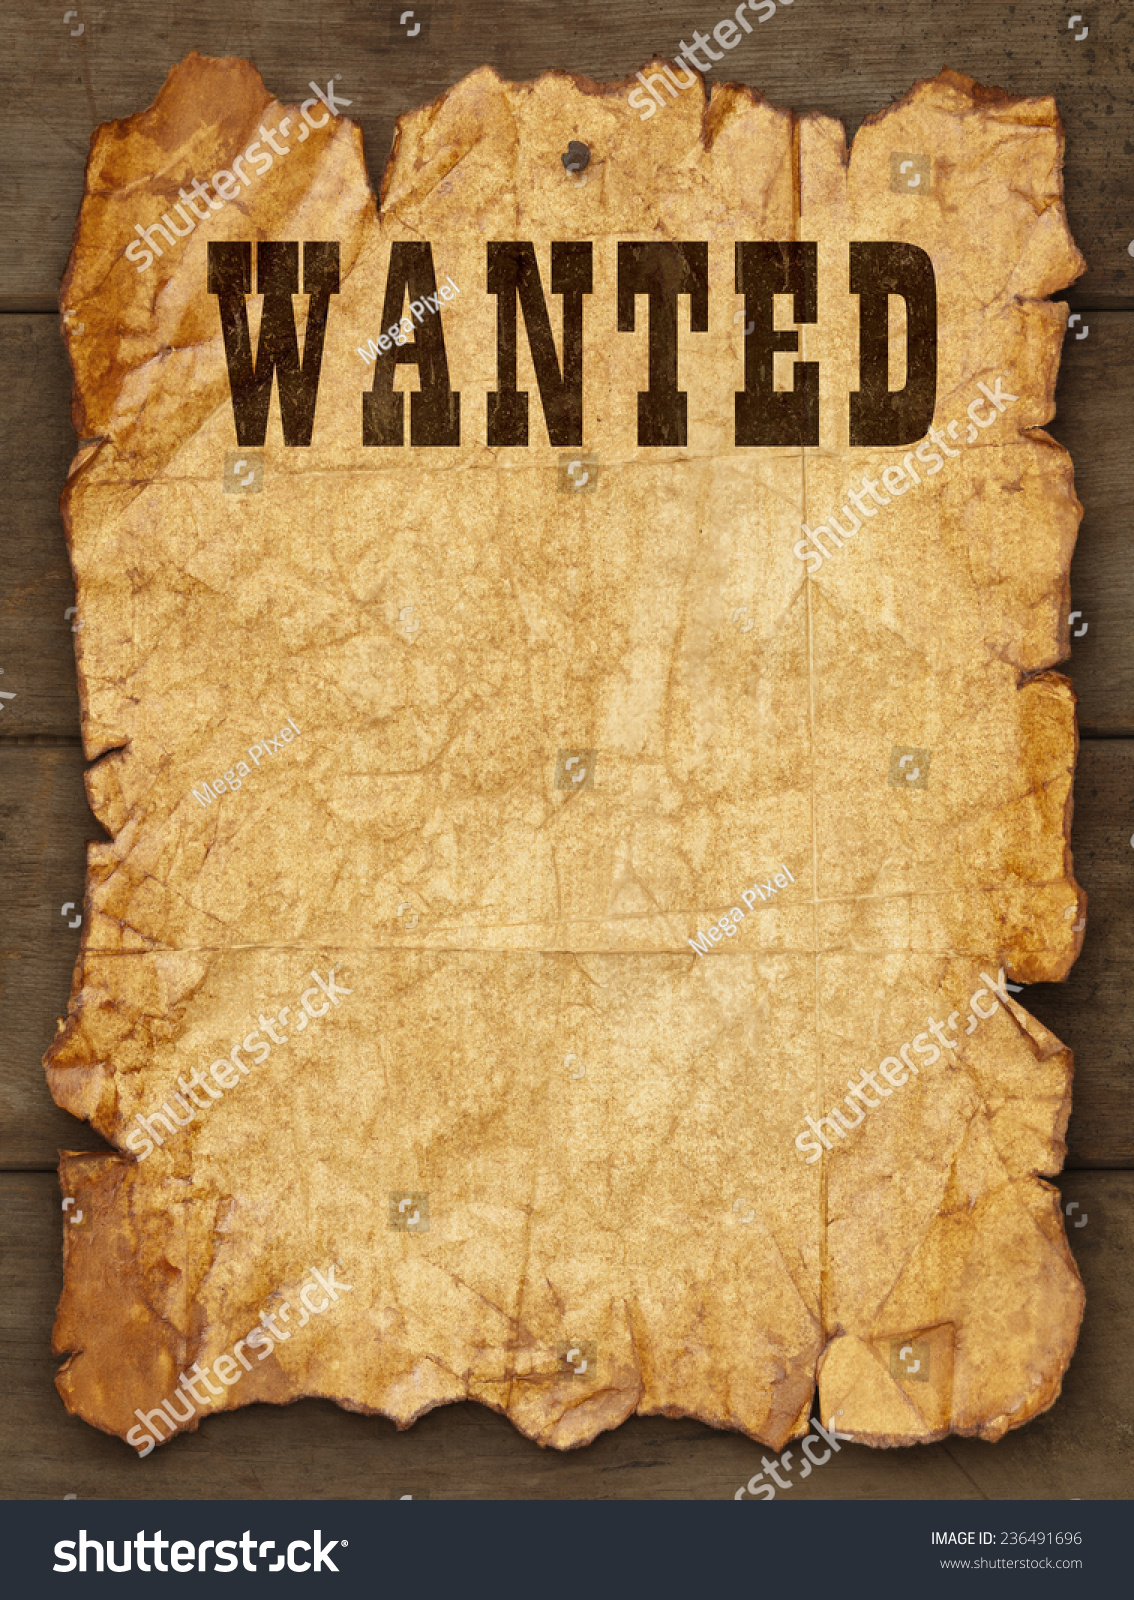 Royaltyfree Wanted Poster Tacked on Wood Boards 236491696 – Old Fashioned Wanted Poster